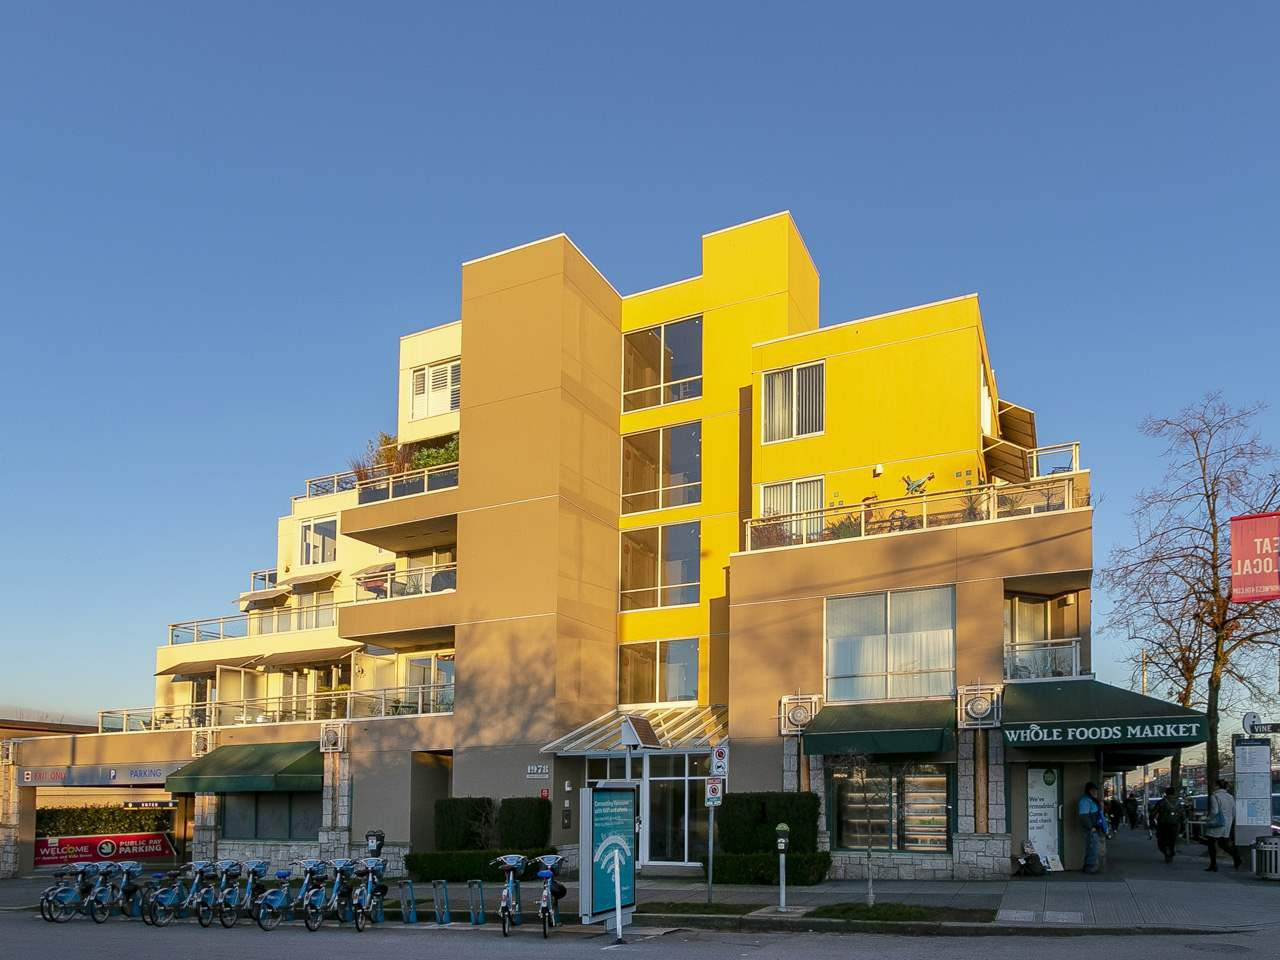 """Main Photo: 206 1978 VINE Street in Vancouver: Kitsilano Condo for sale in """"Capers Building"""" (Vancouver West)  : MLS®# R2339604"""